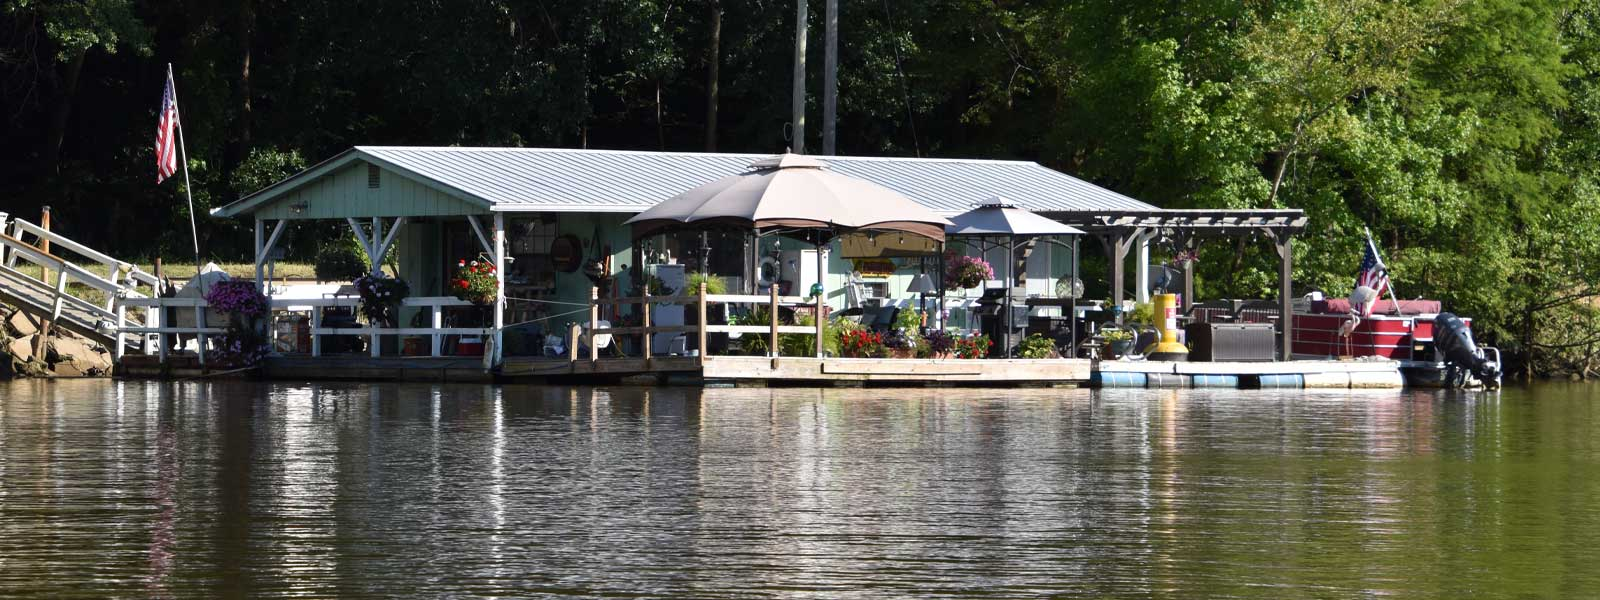 Example of a house boat using an available boat slip